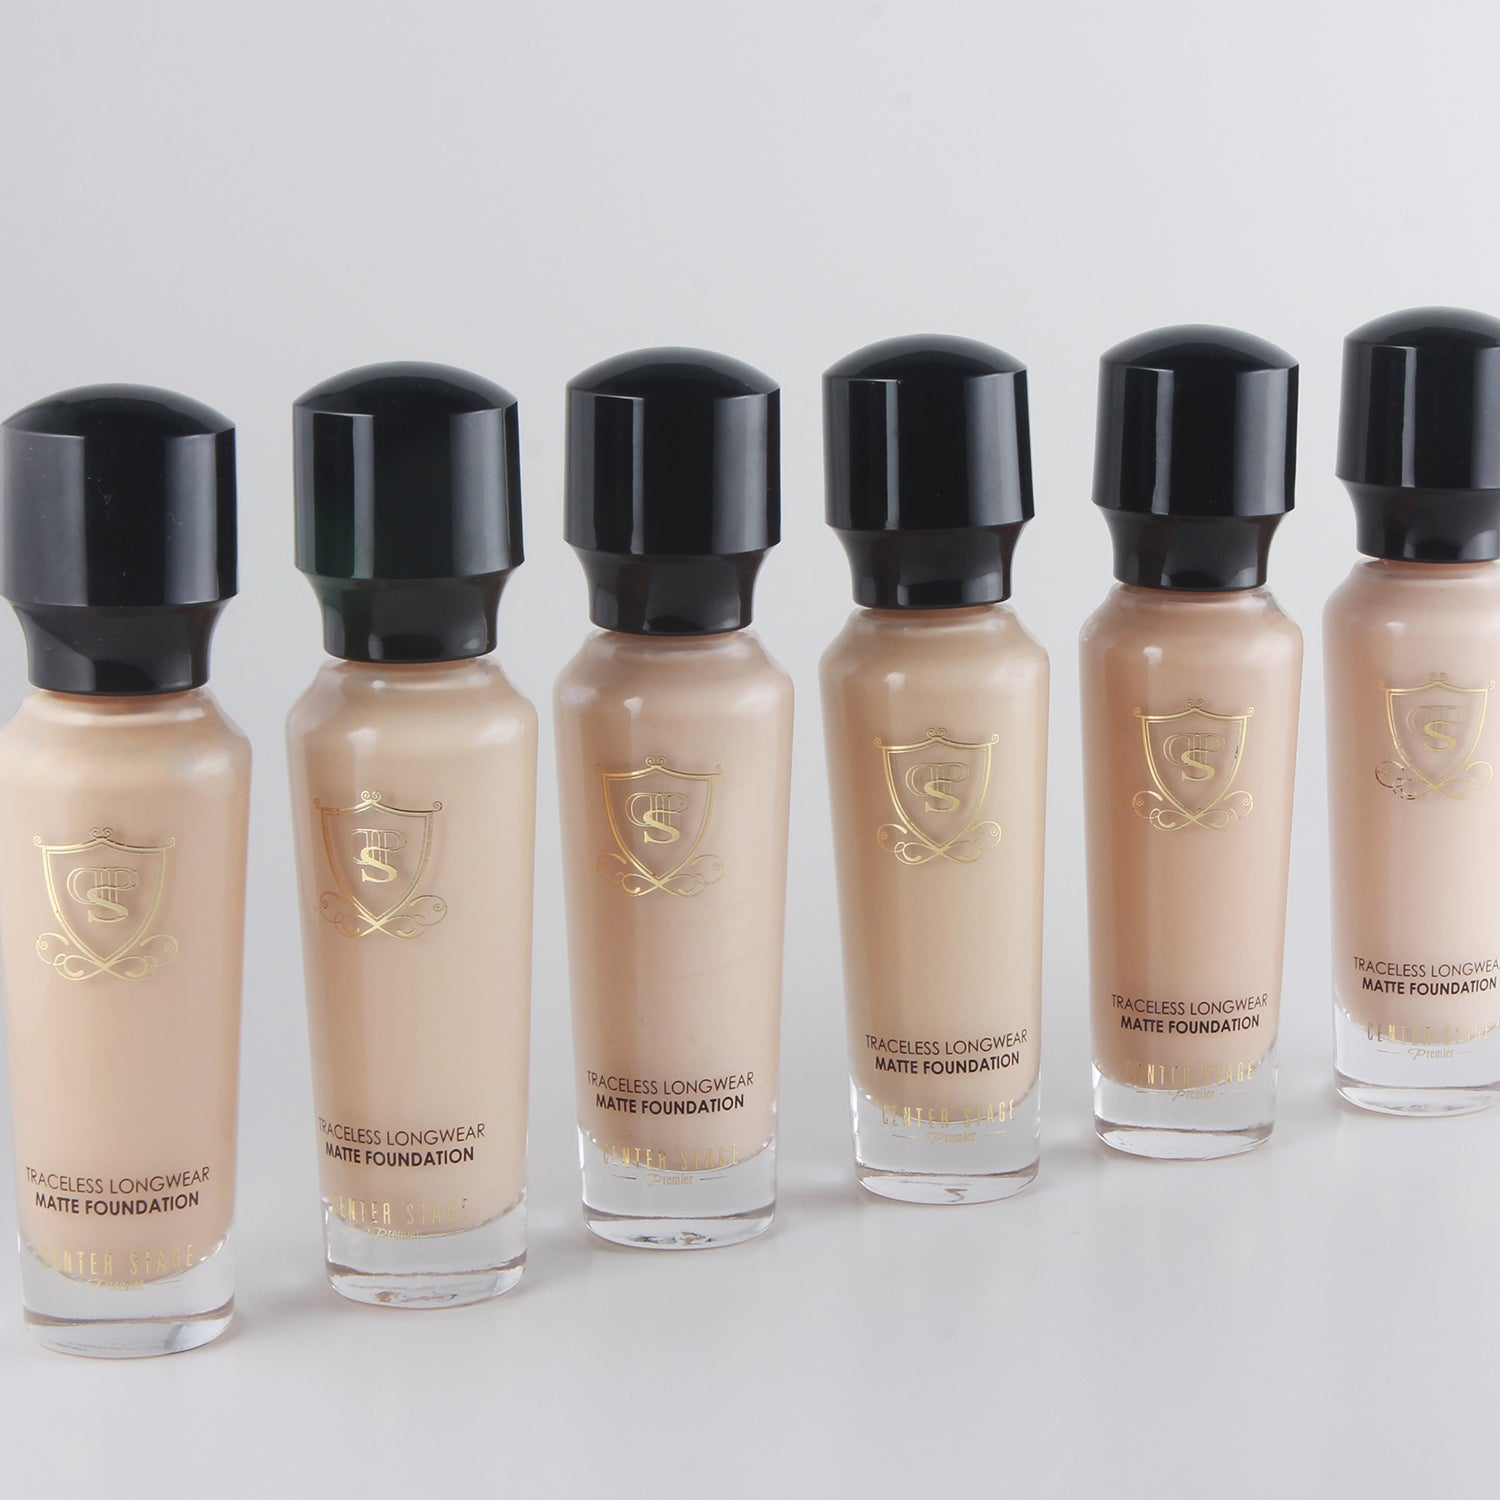 Traceless Longwear Perfecting Foundation